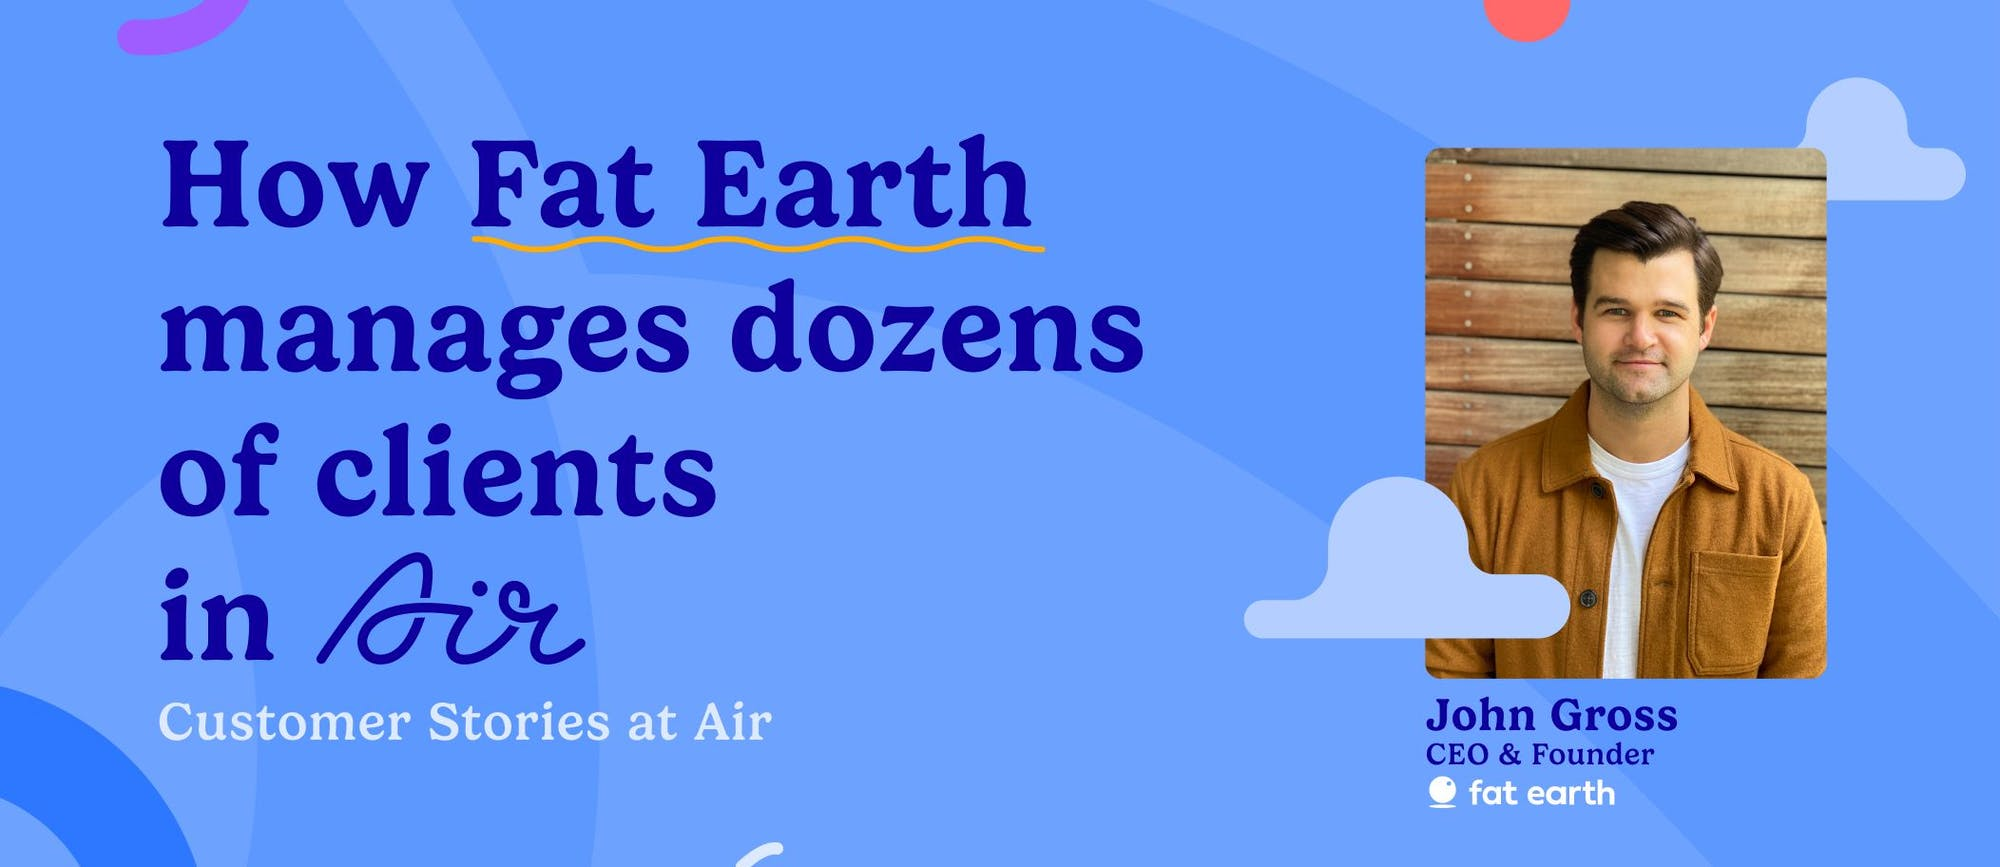 Fat Earth blog cover card featuring John Gross, CEO & Founder